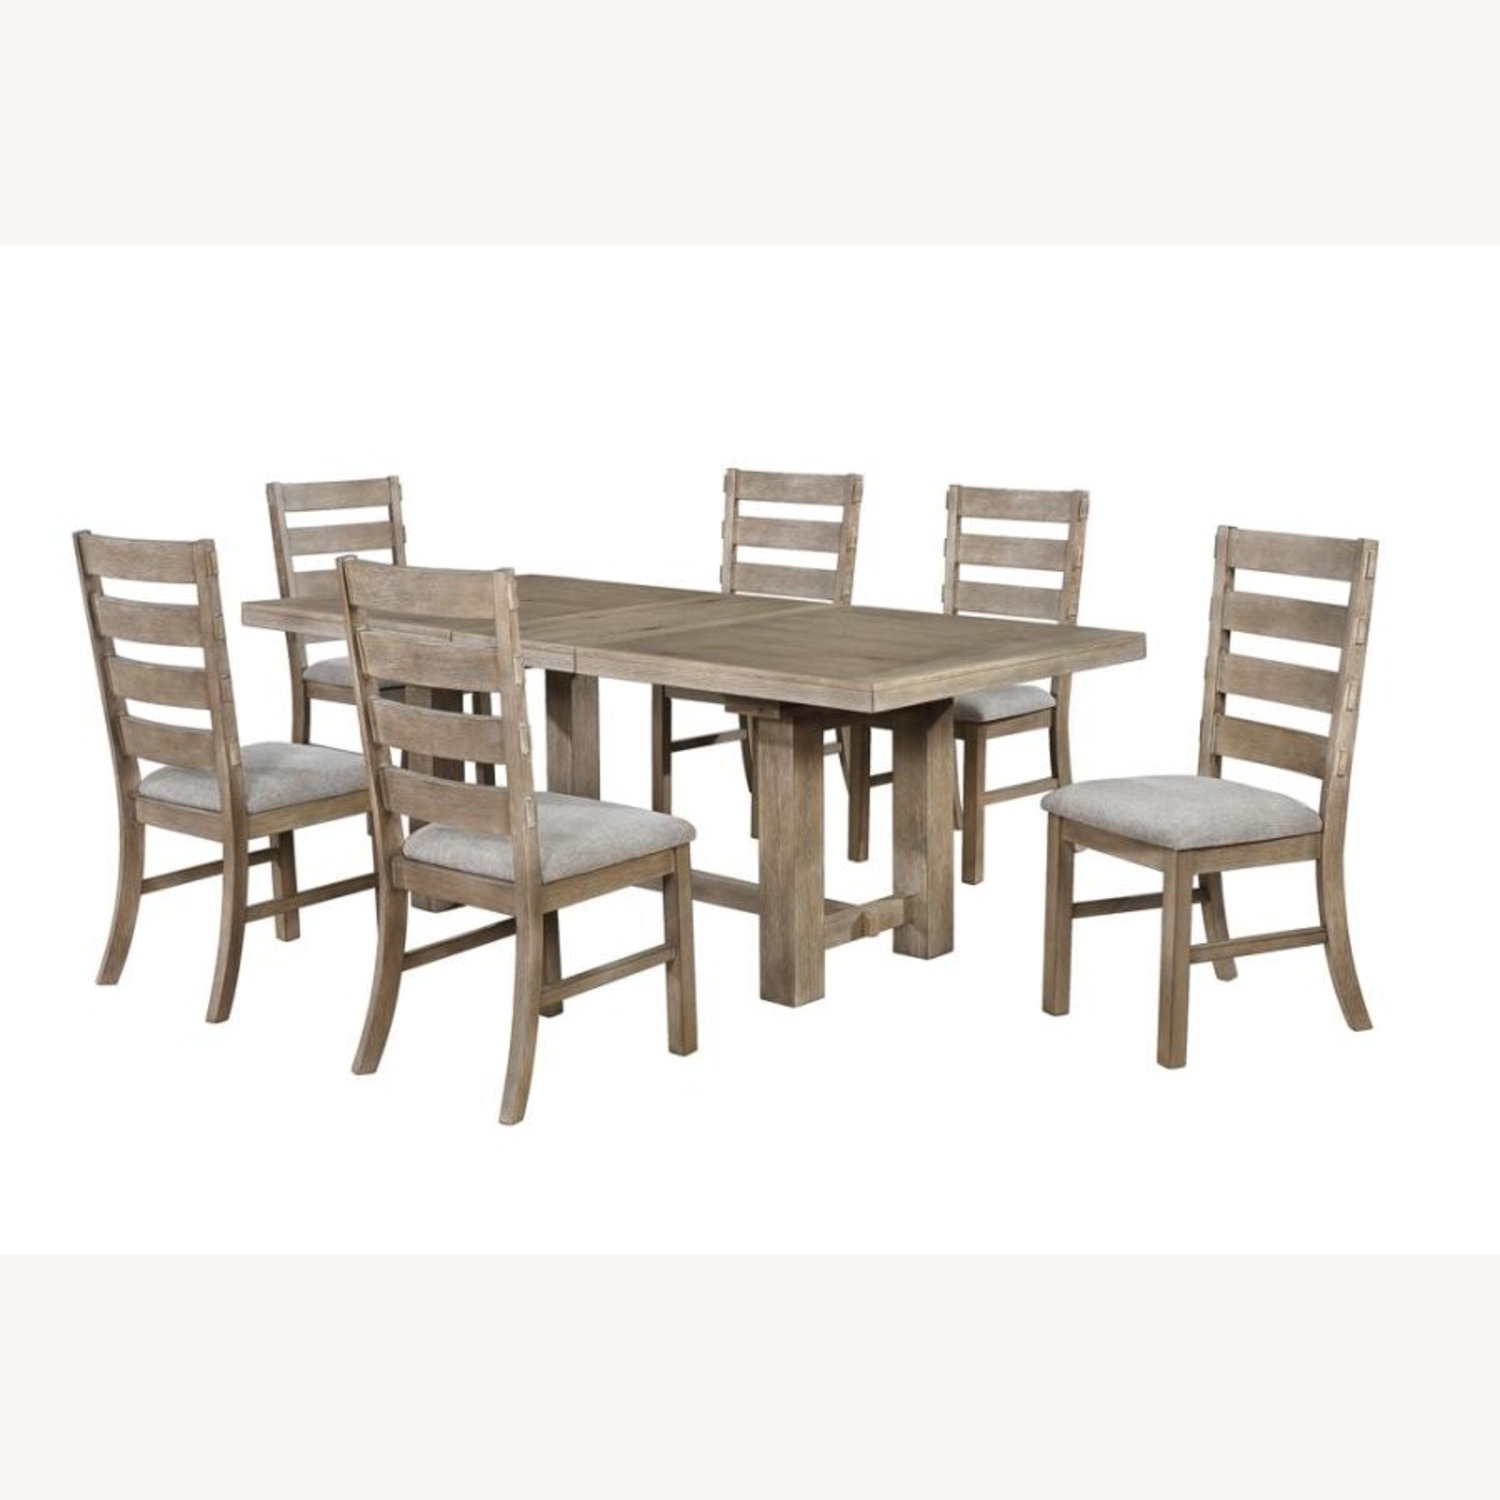 Rustic Dining Chair In Vineyard Oak Finish - image-4